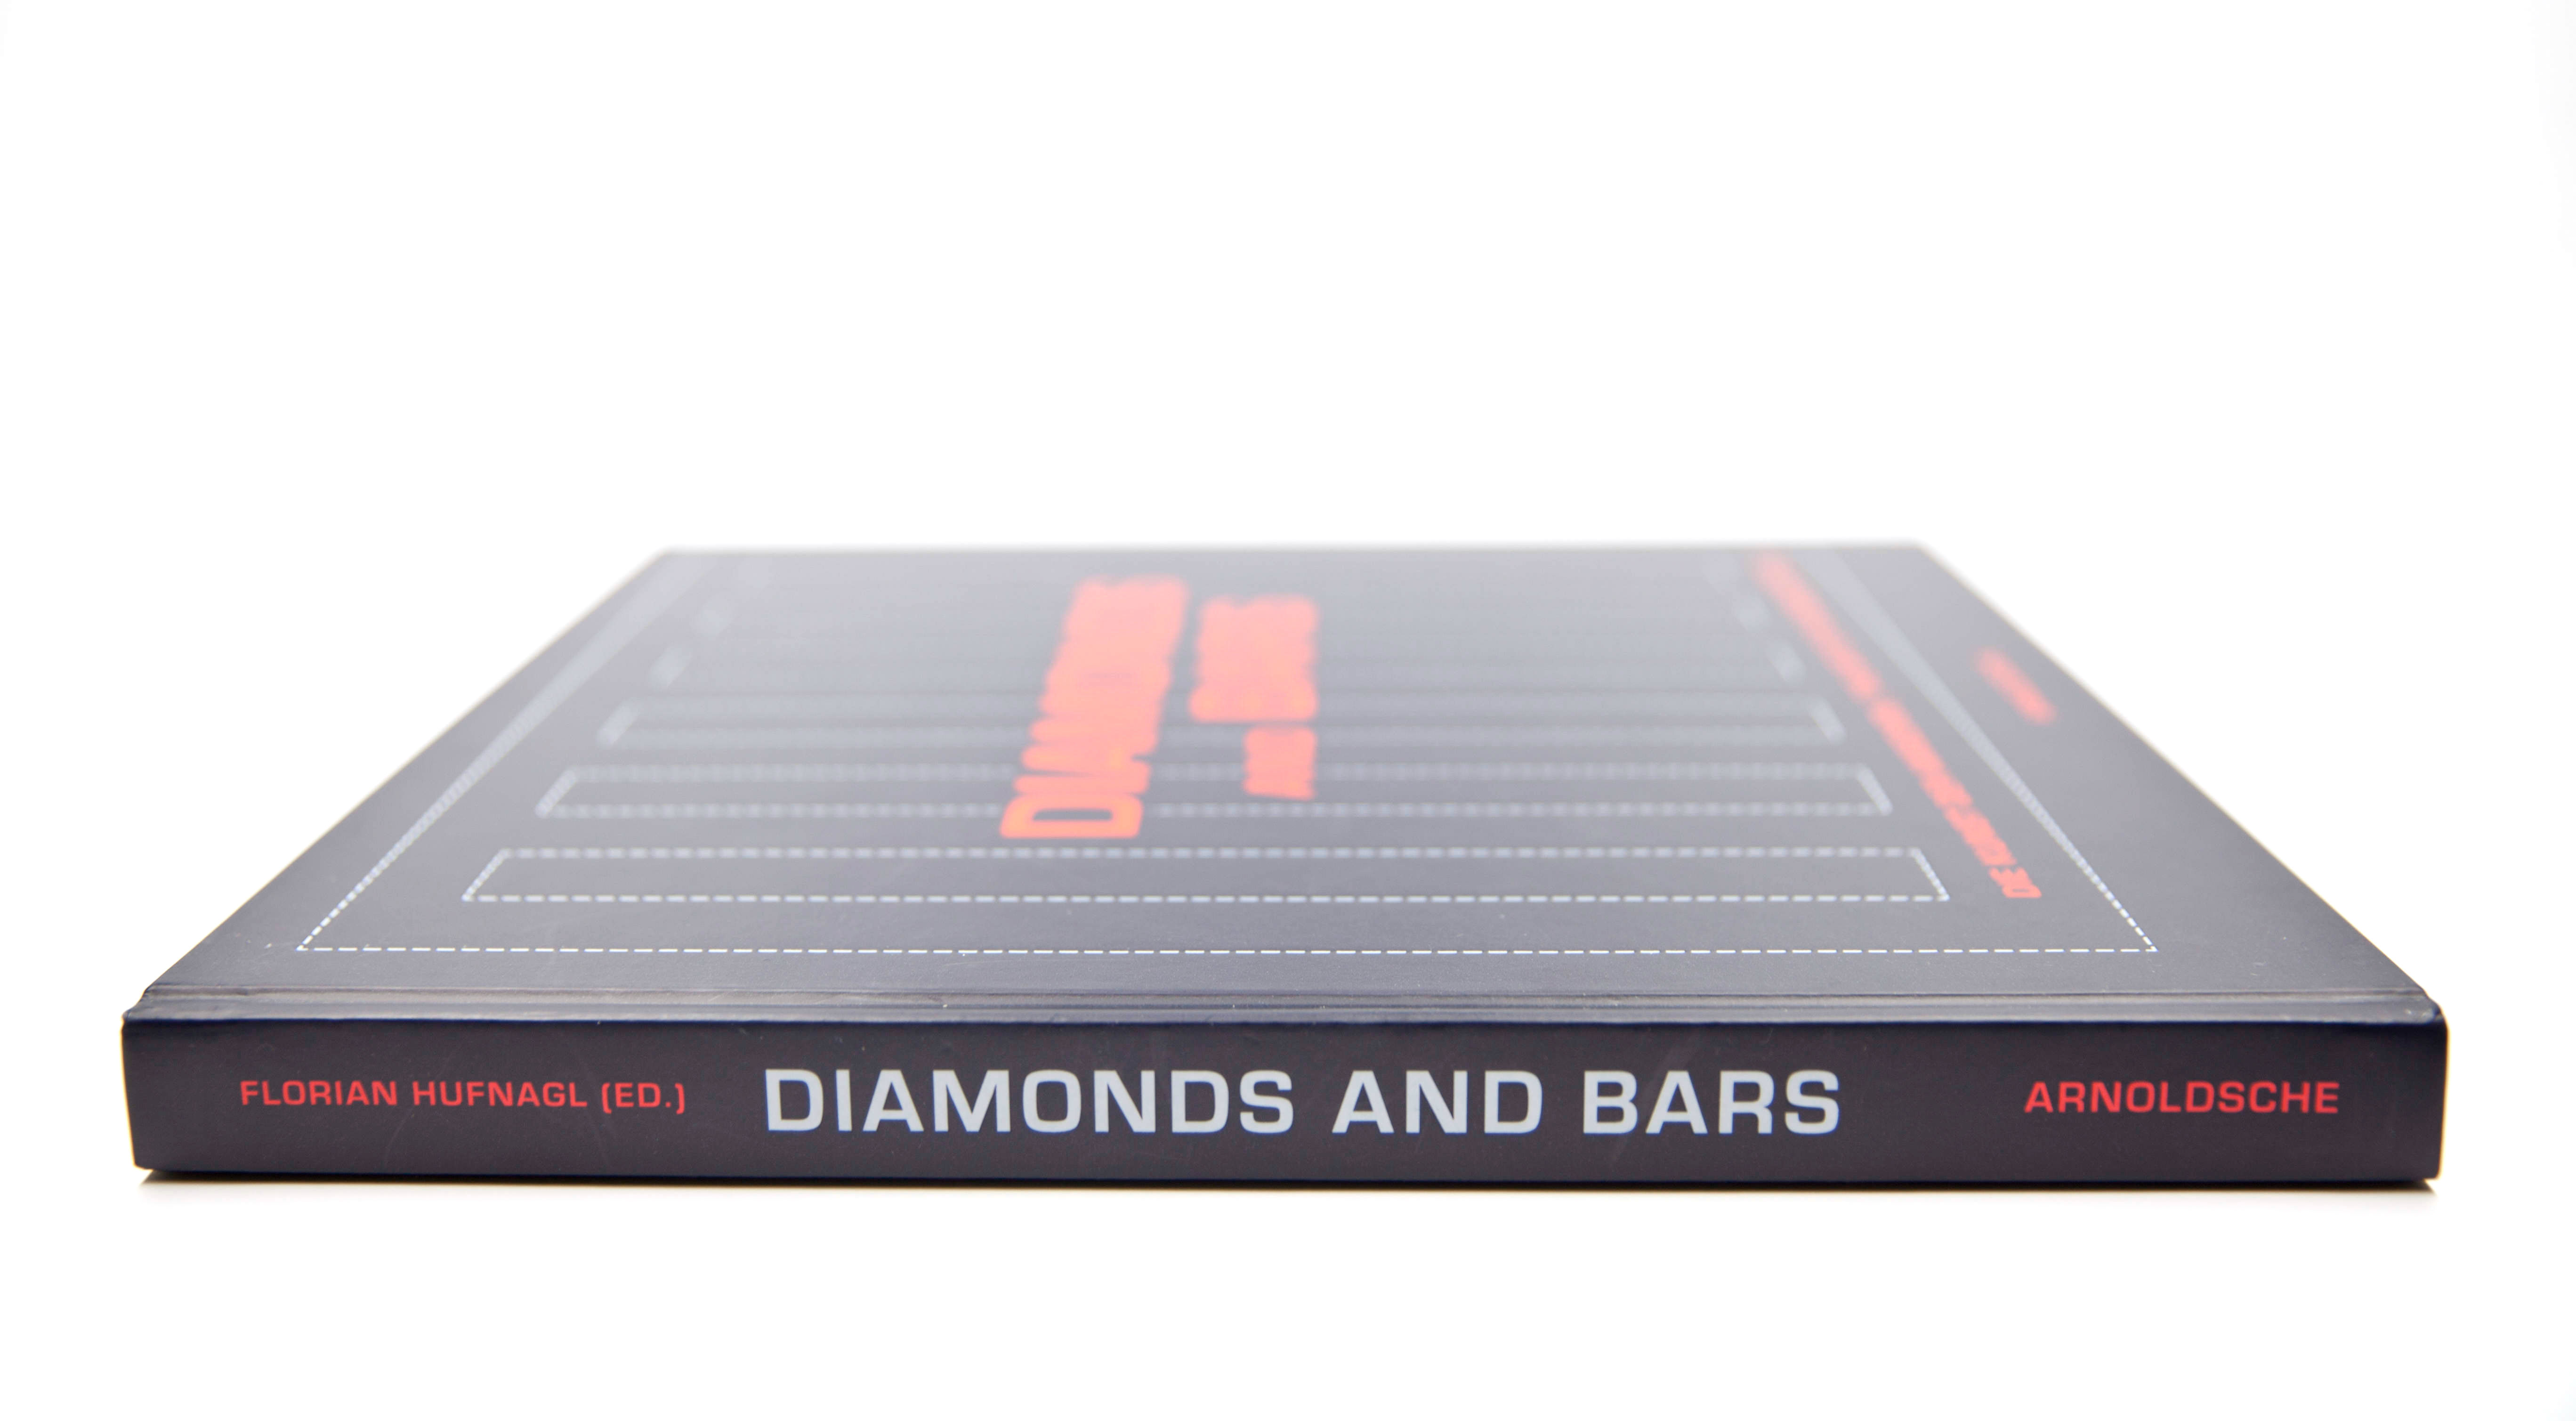 Diamonds and Bars. Die Kunst der Amischen / The Art of the Amish People